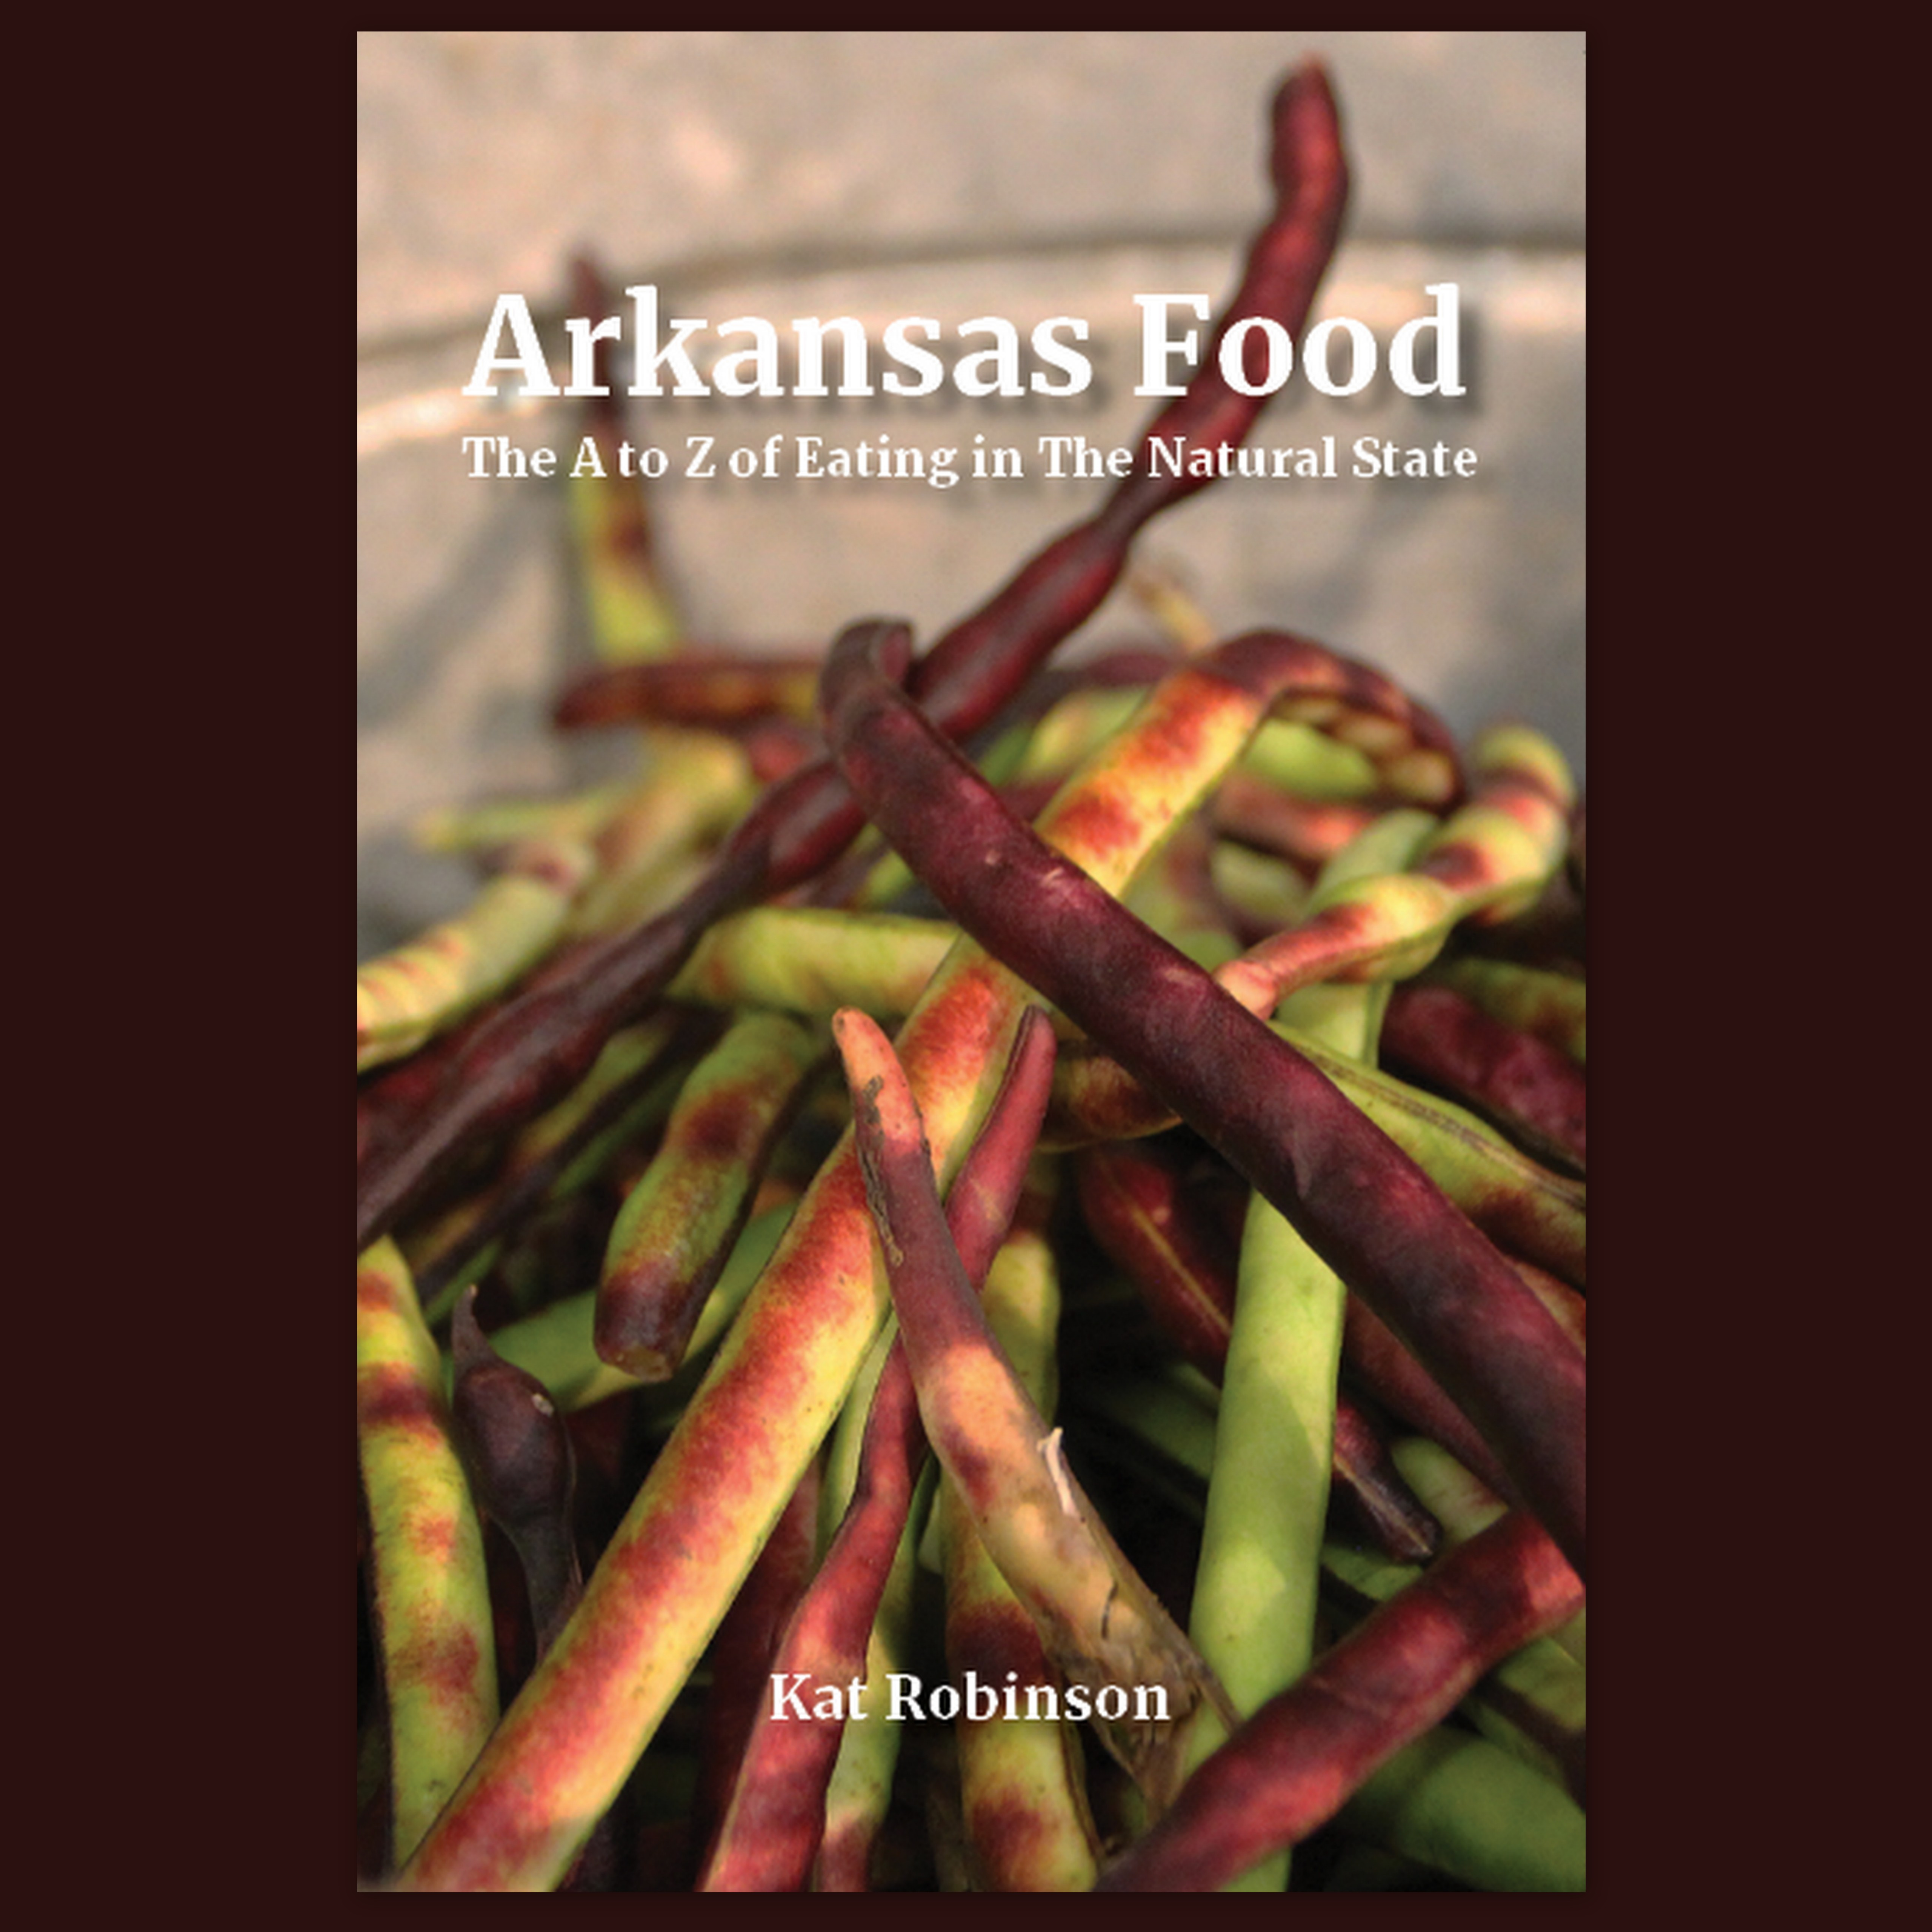 Arkansas Food: The A to Z of Eating in The Natural State